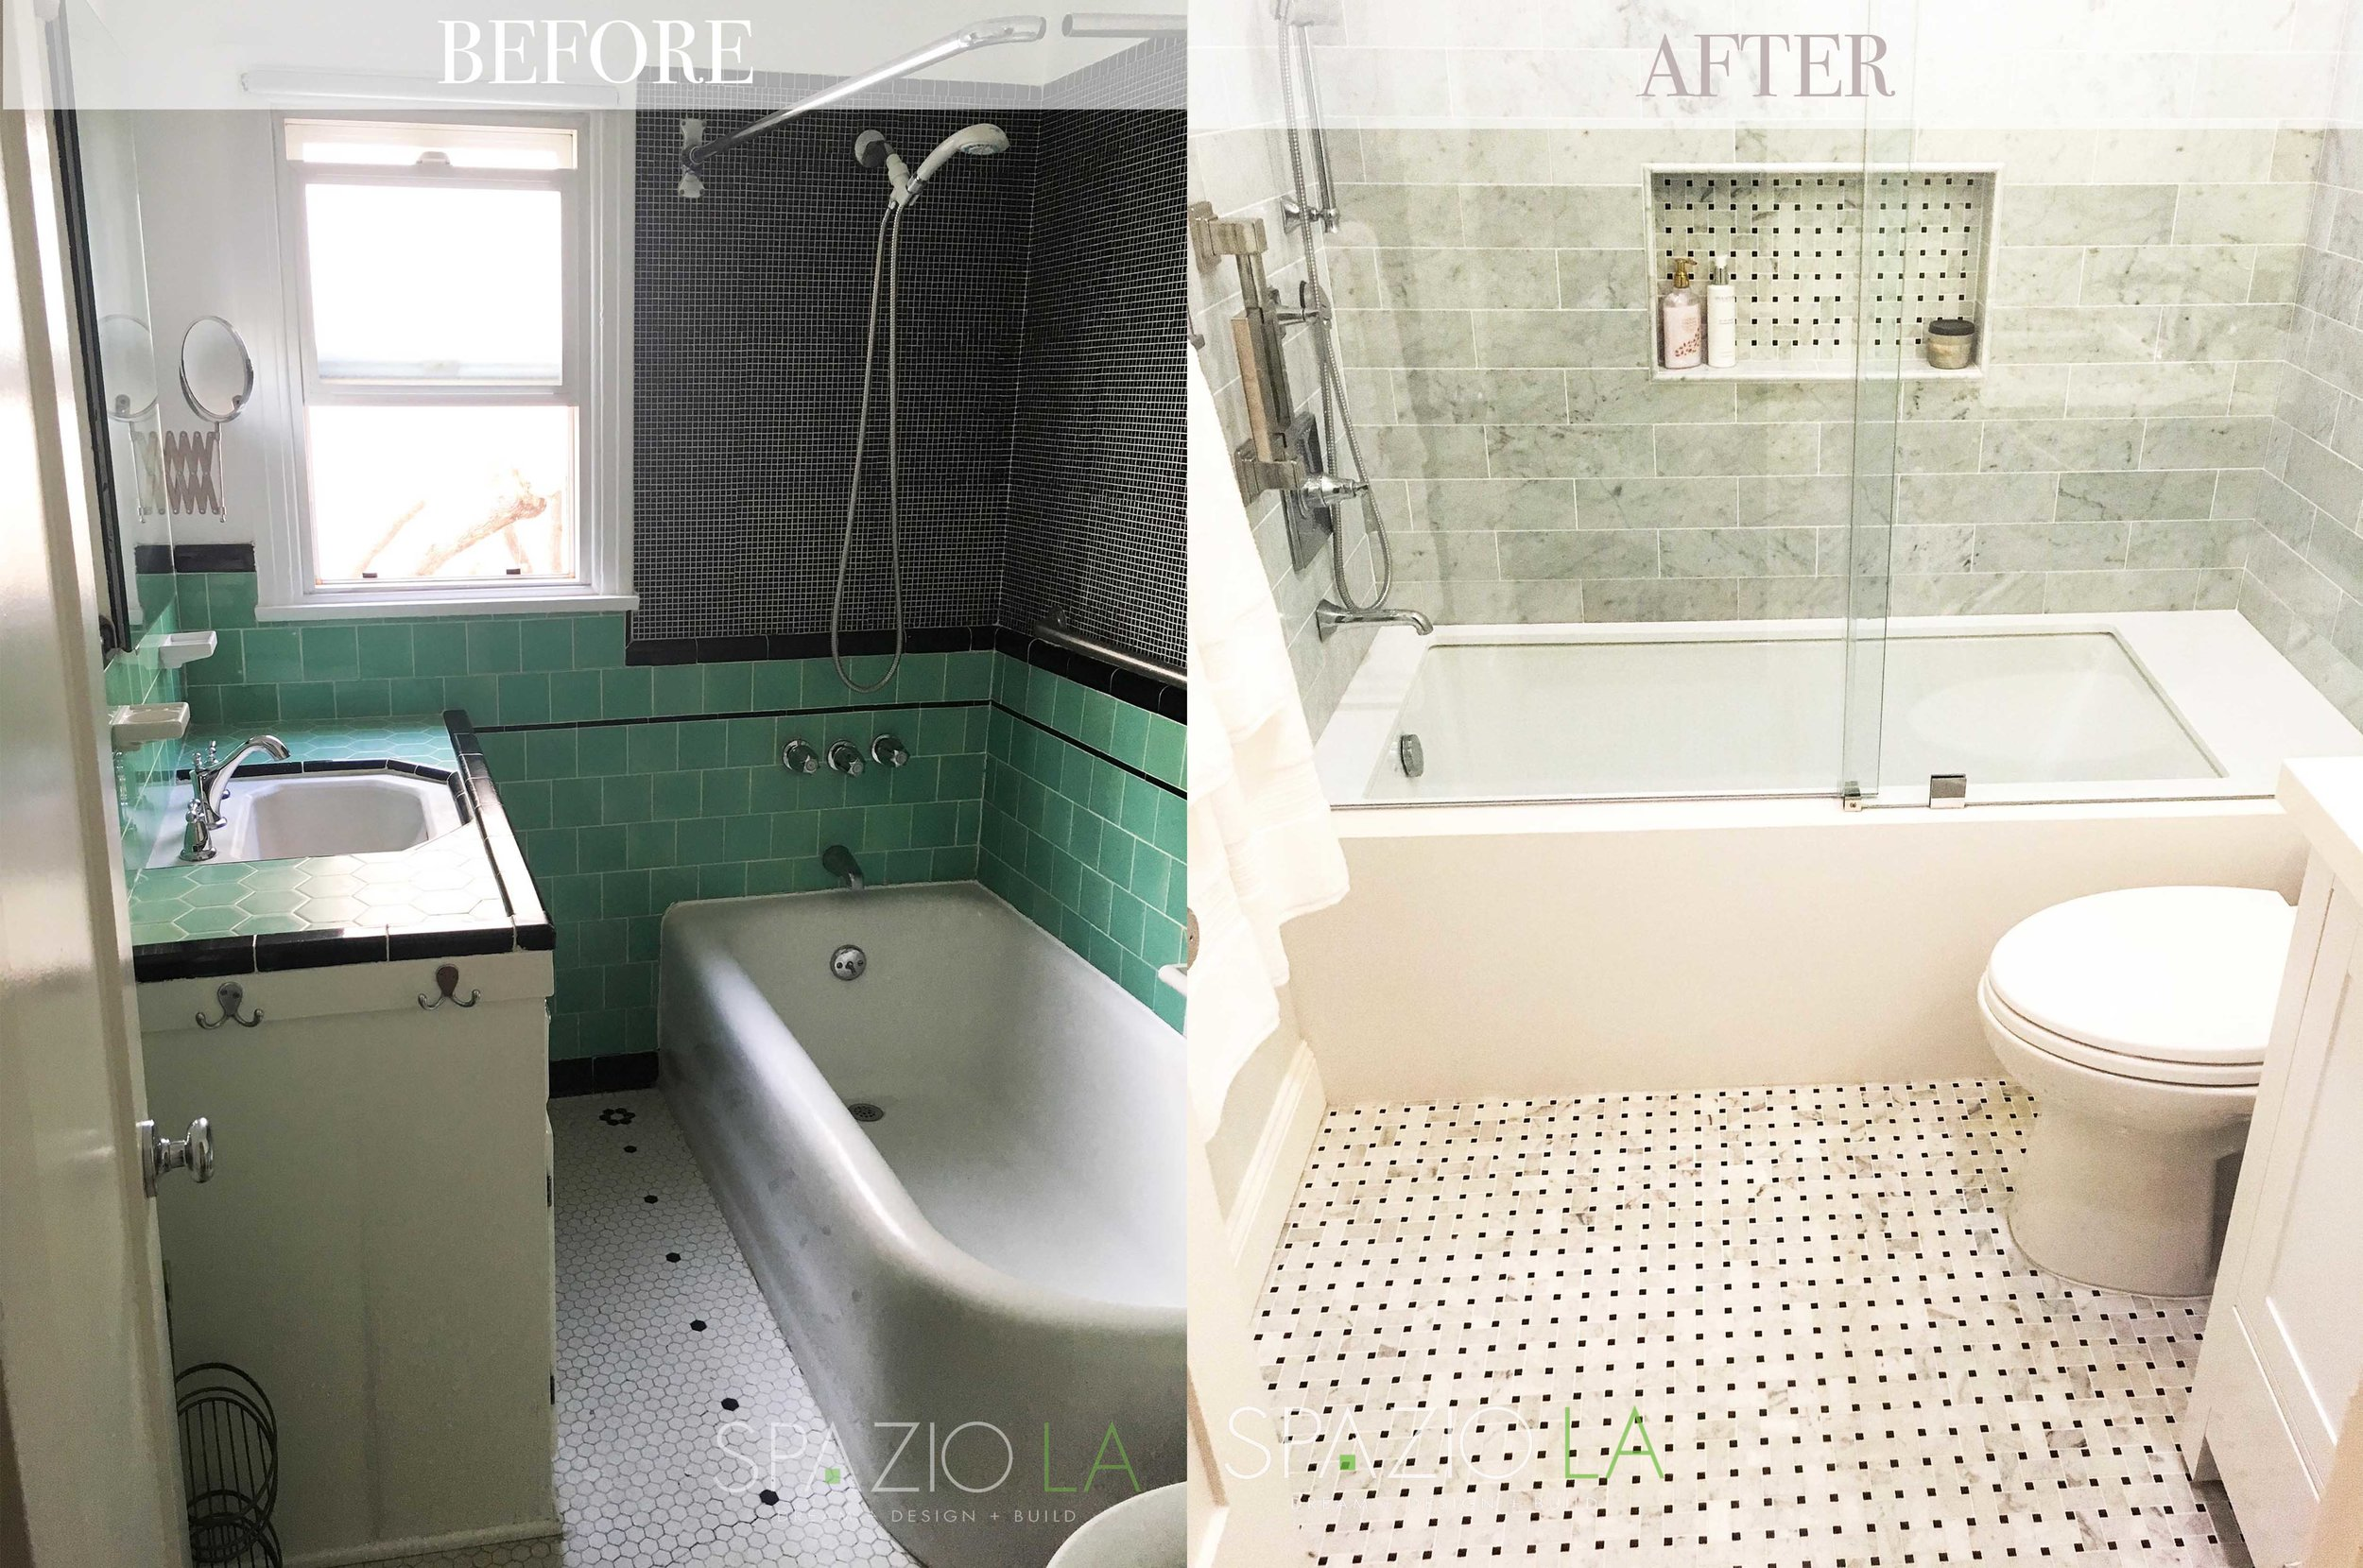 burbank bathroom remodel before and after.jpg